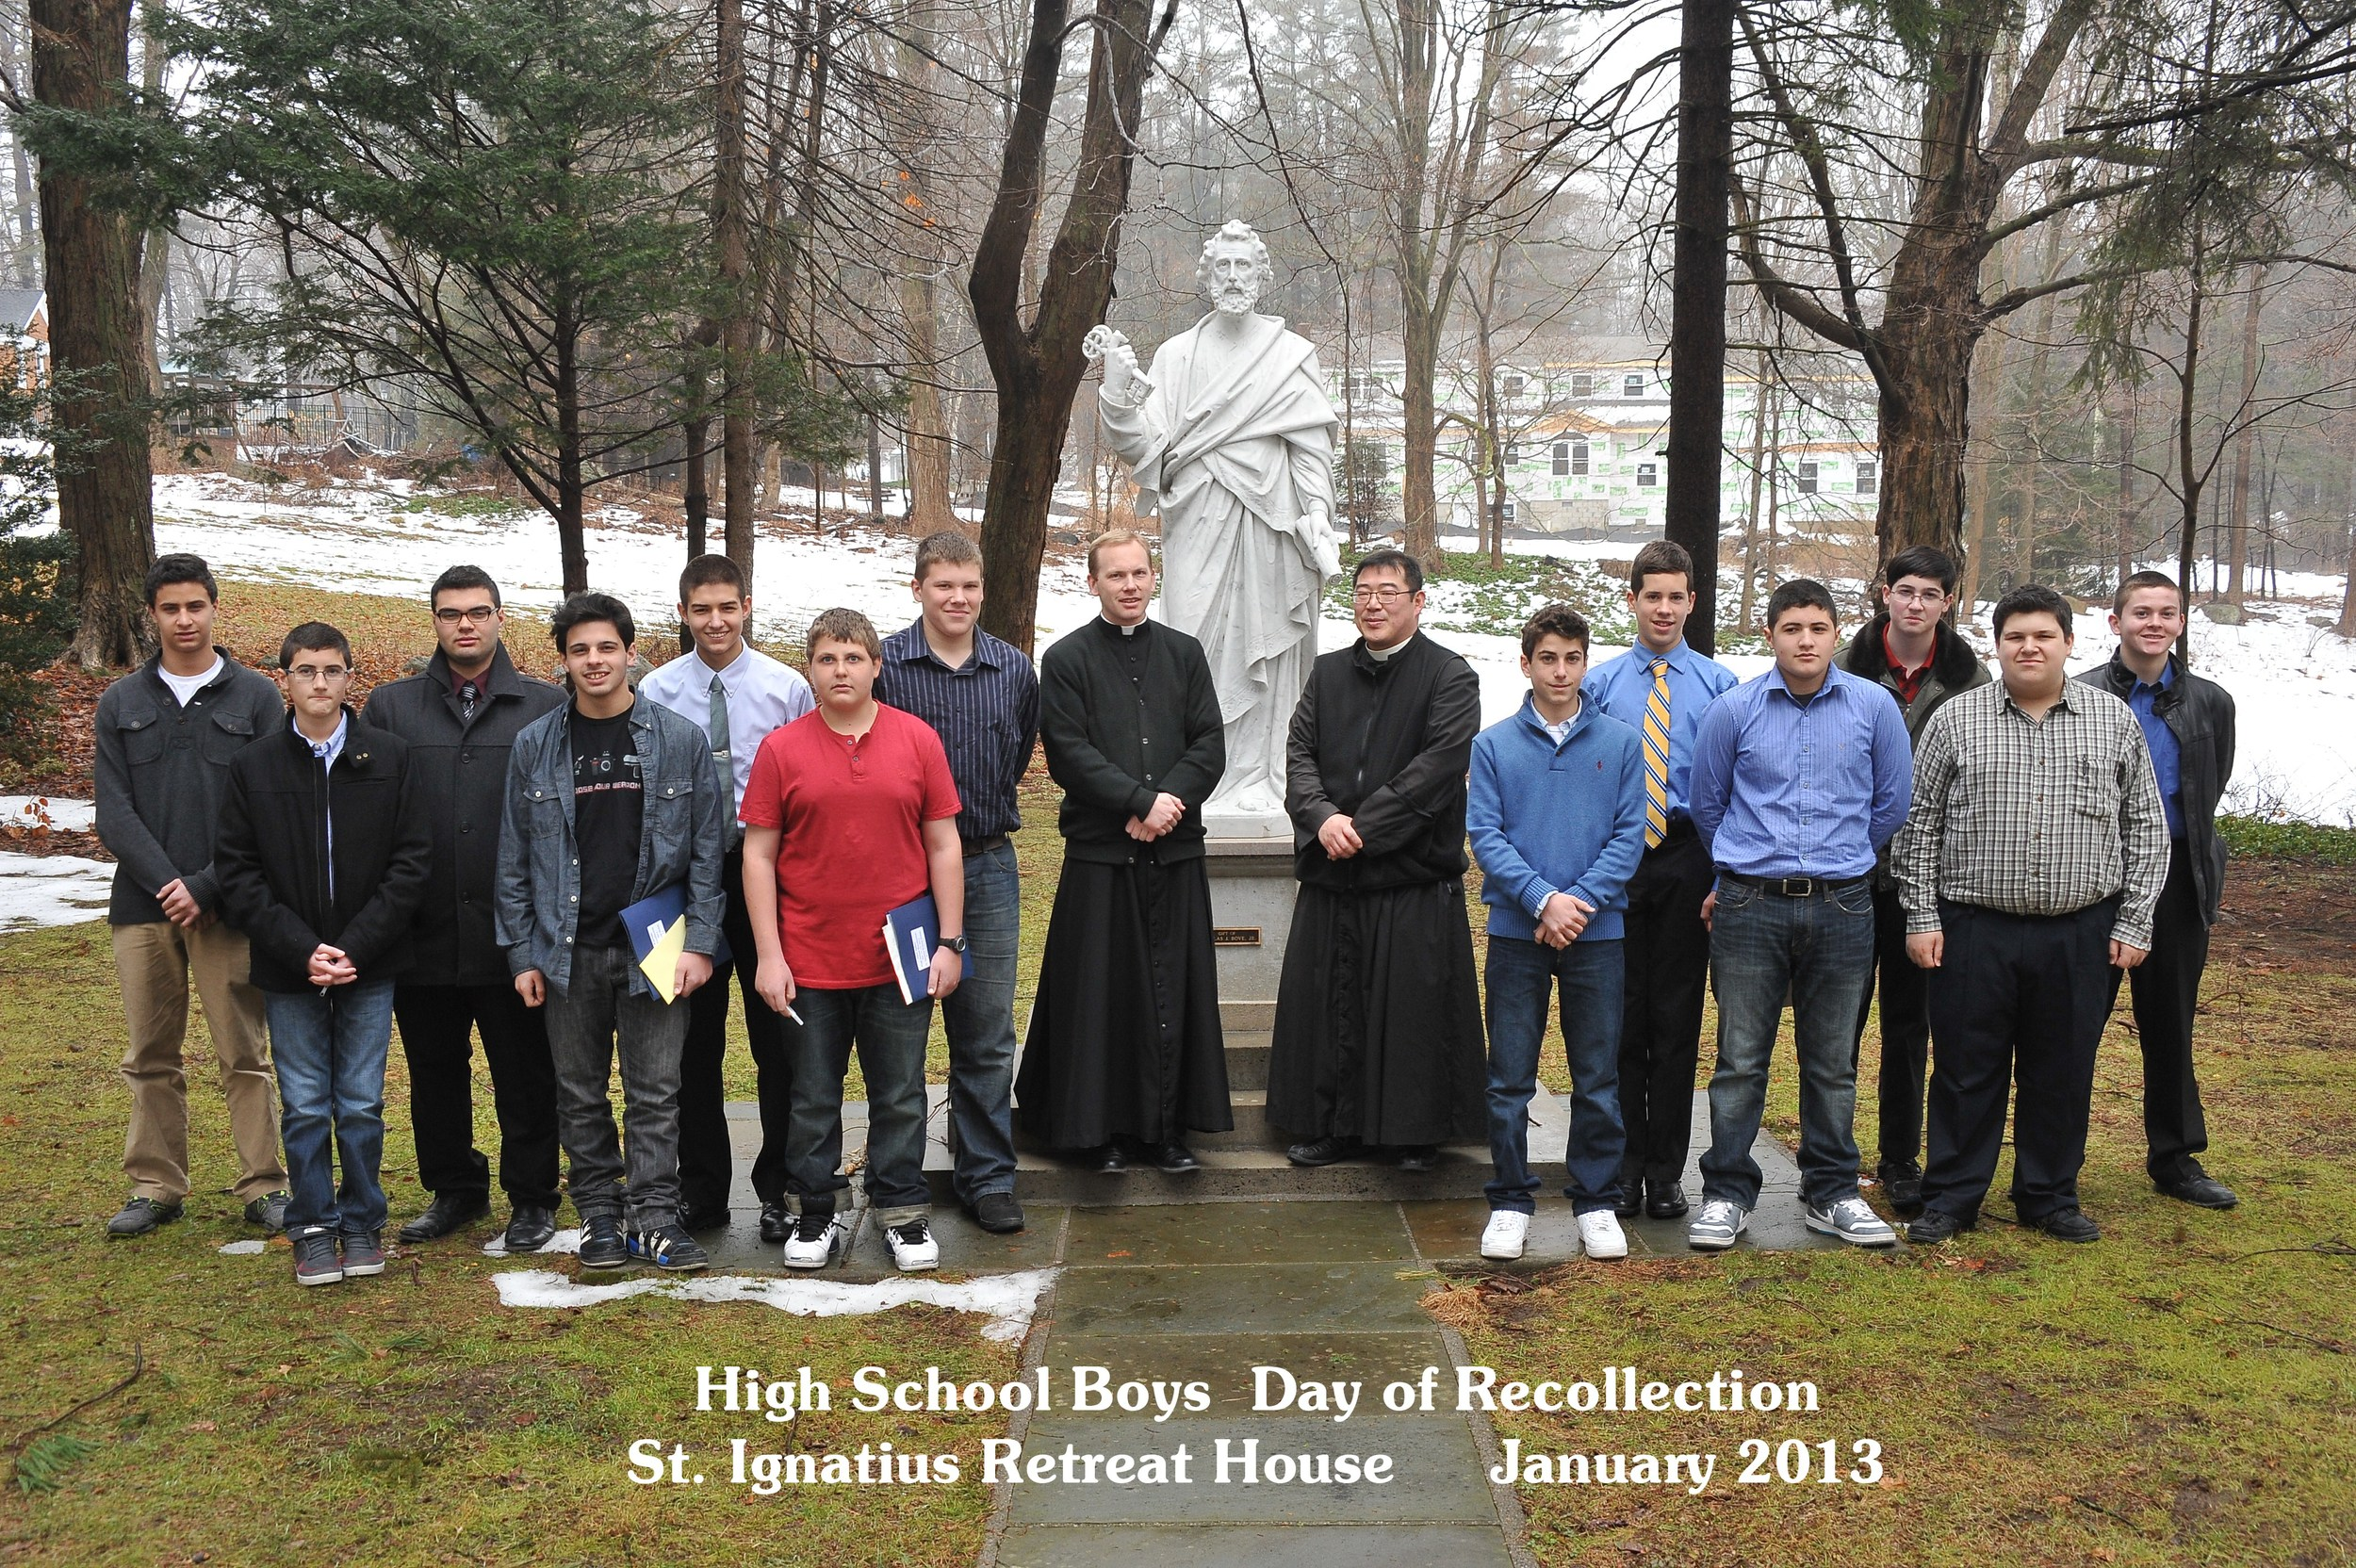 HighSchoolBoysRecollection2013.jpg